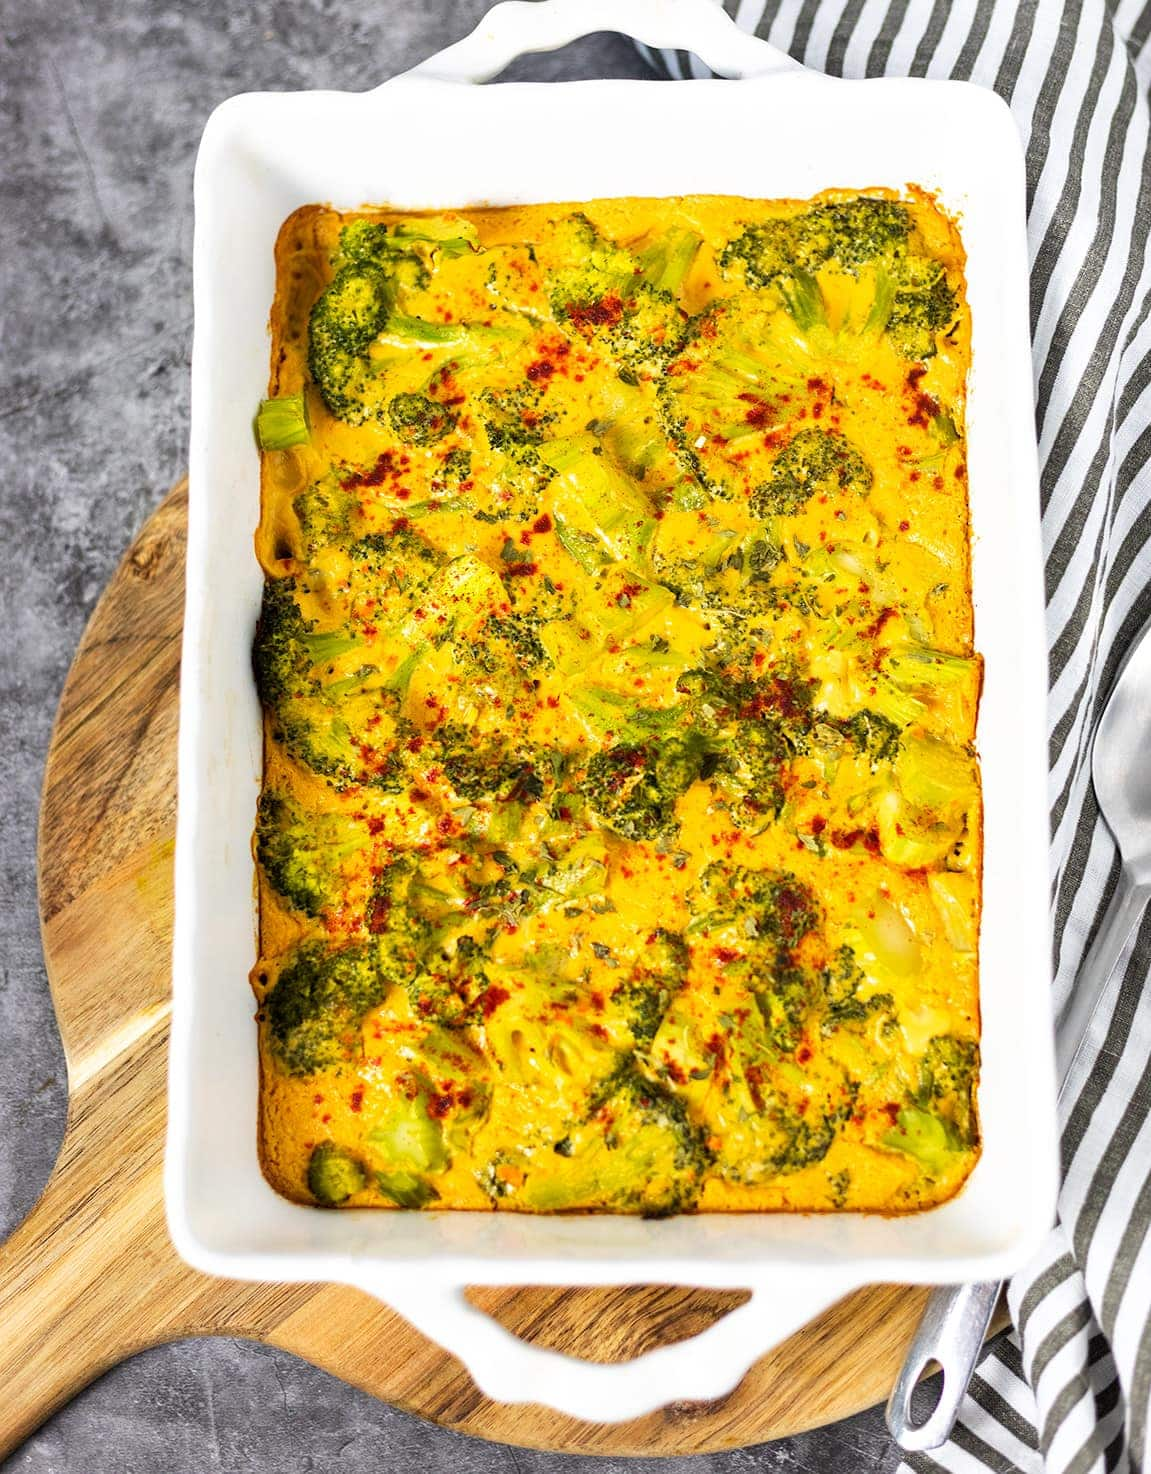 Gluten-Free Vegan Broccoli Cheese Casserole